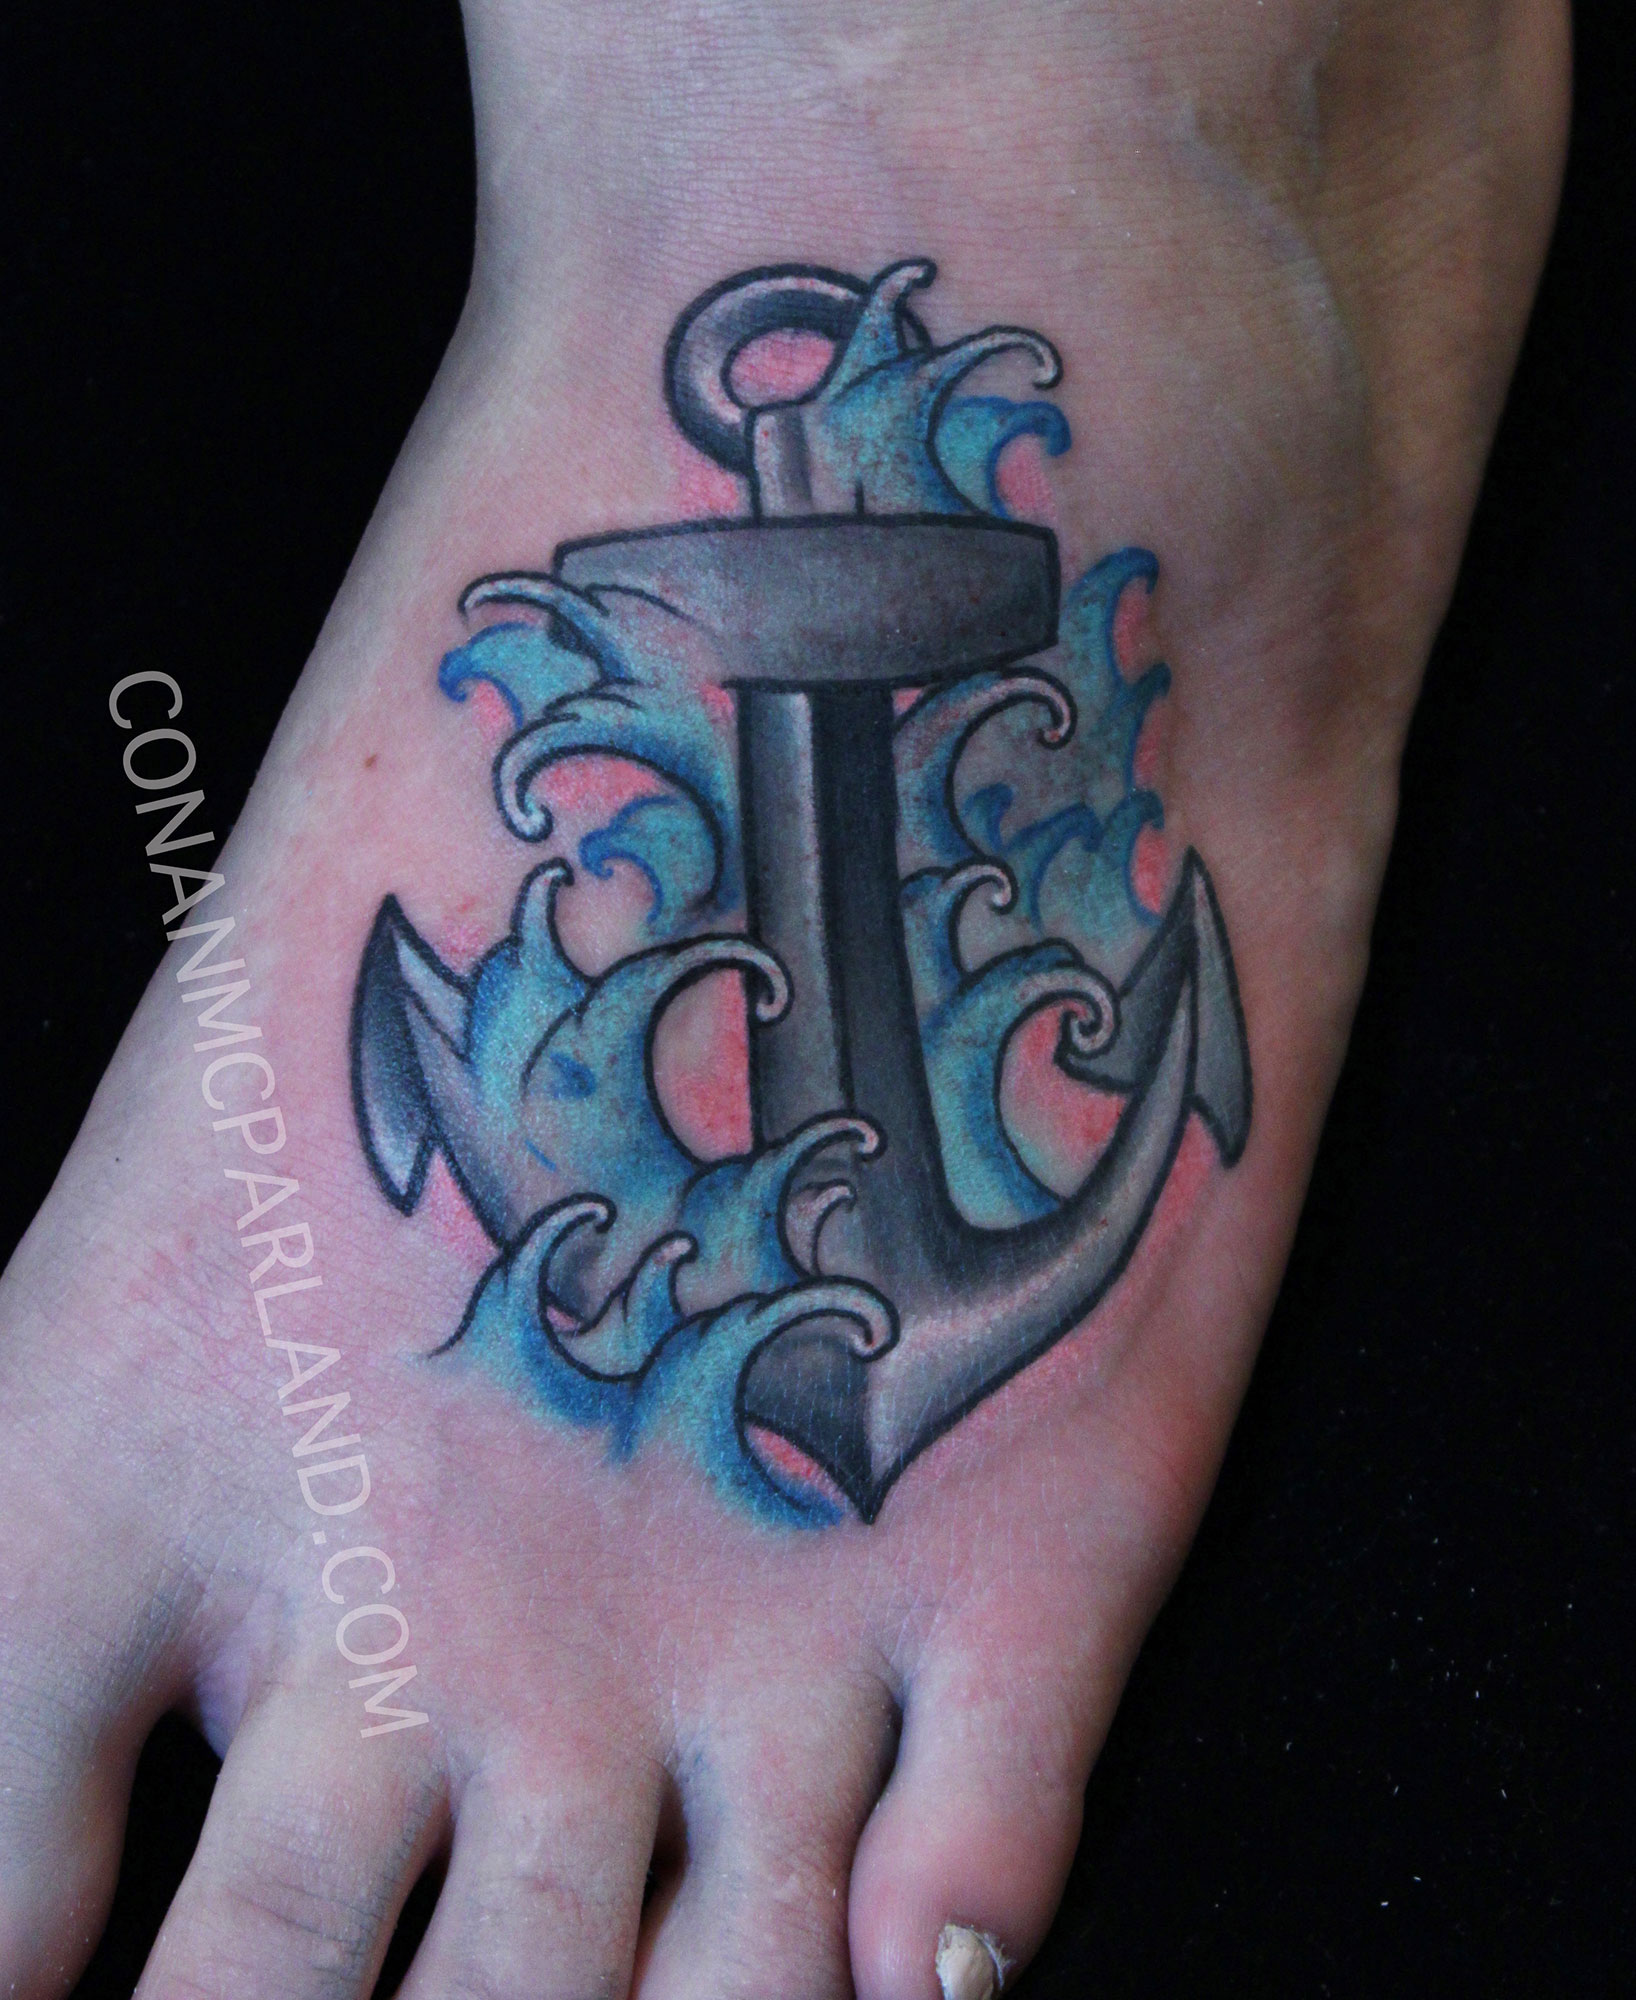 Tattoo shops in charlotte canvas tattoo art gallery for Tattoo shops in nc